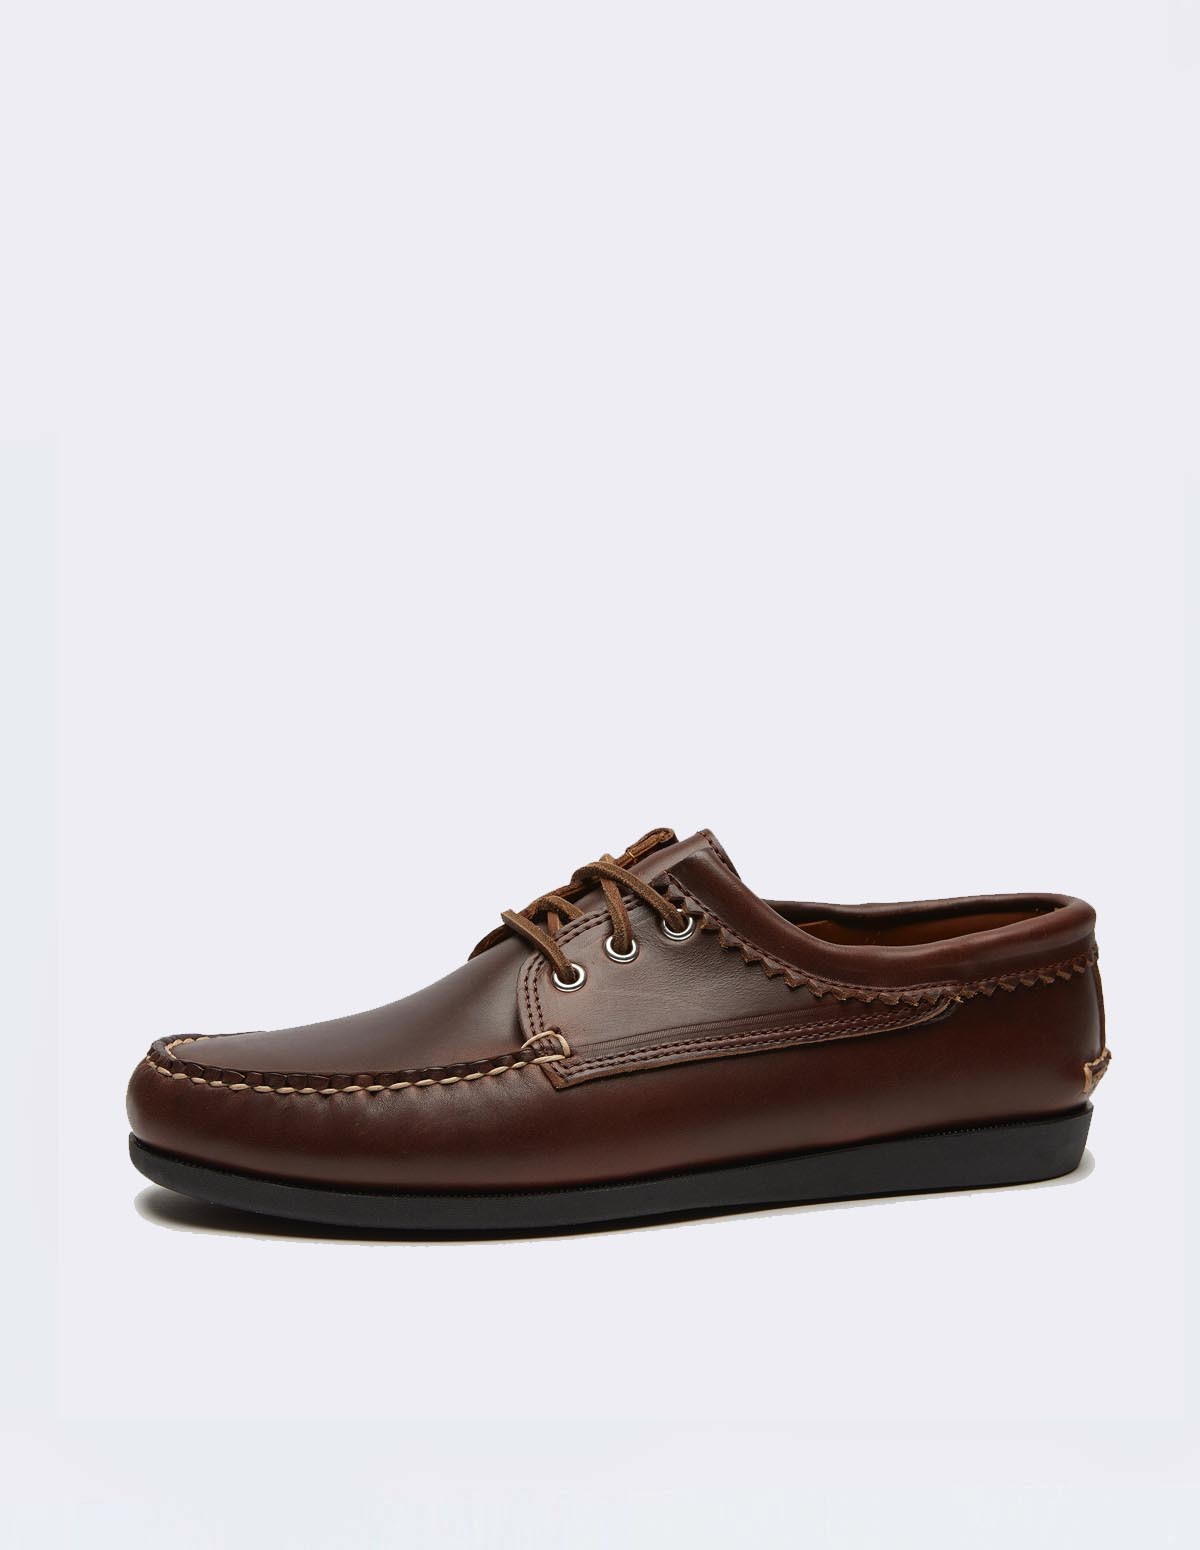 Quoddy Blutcher Leather - BROWN / CHARCOAL